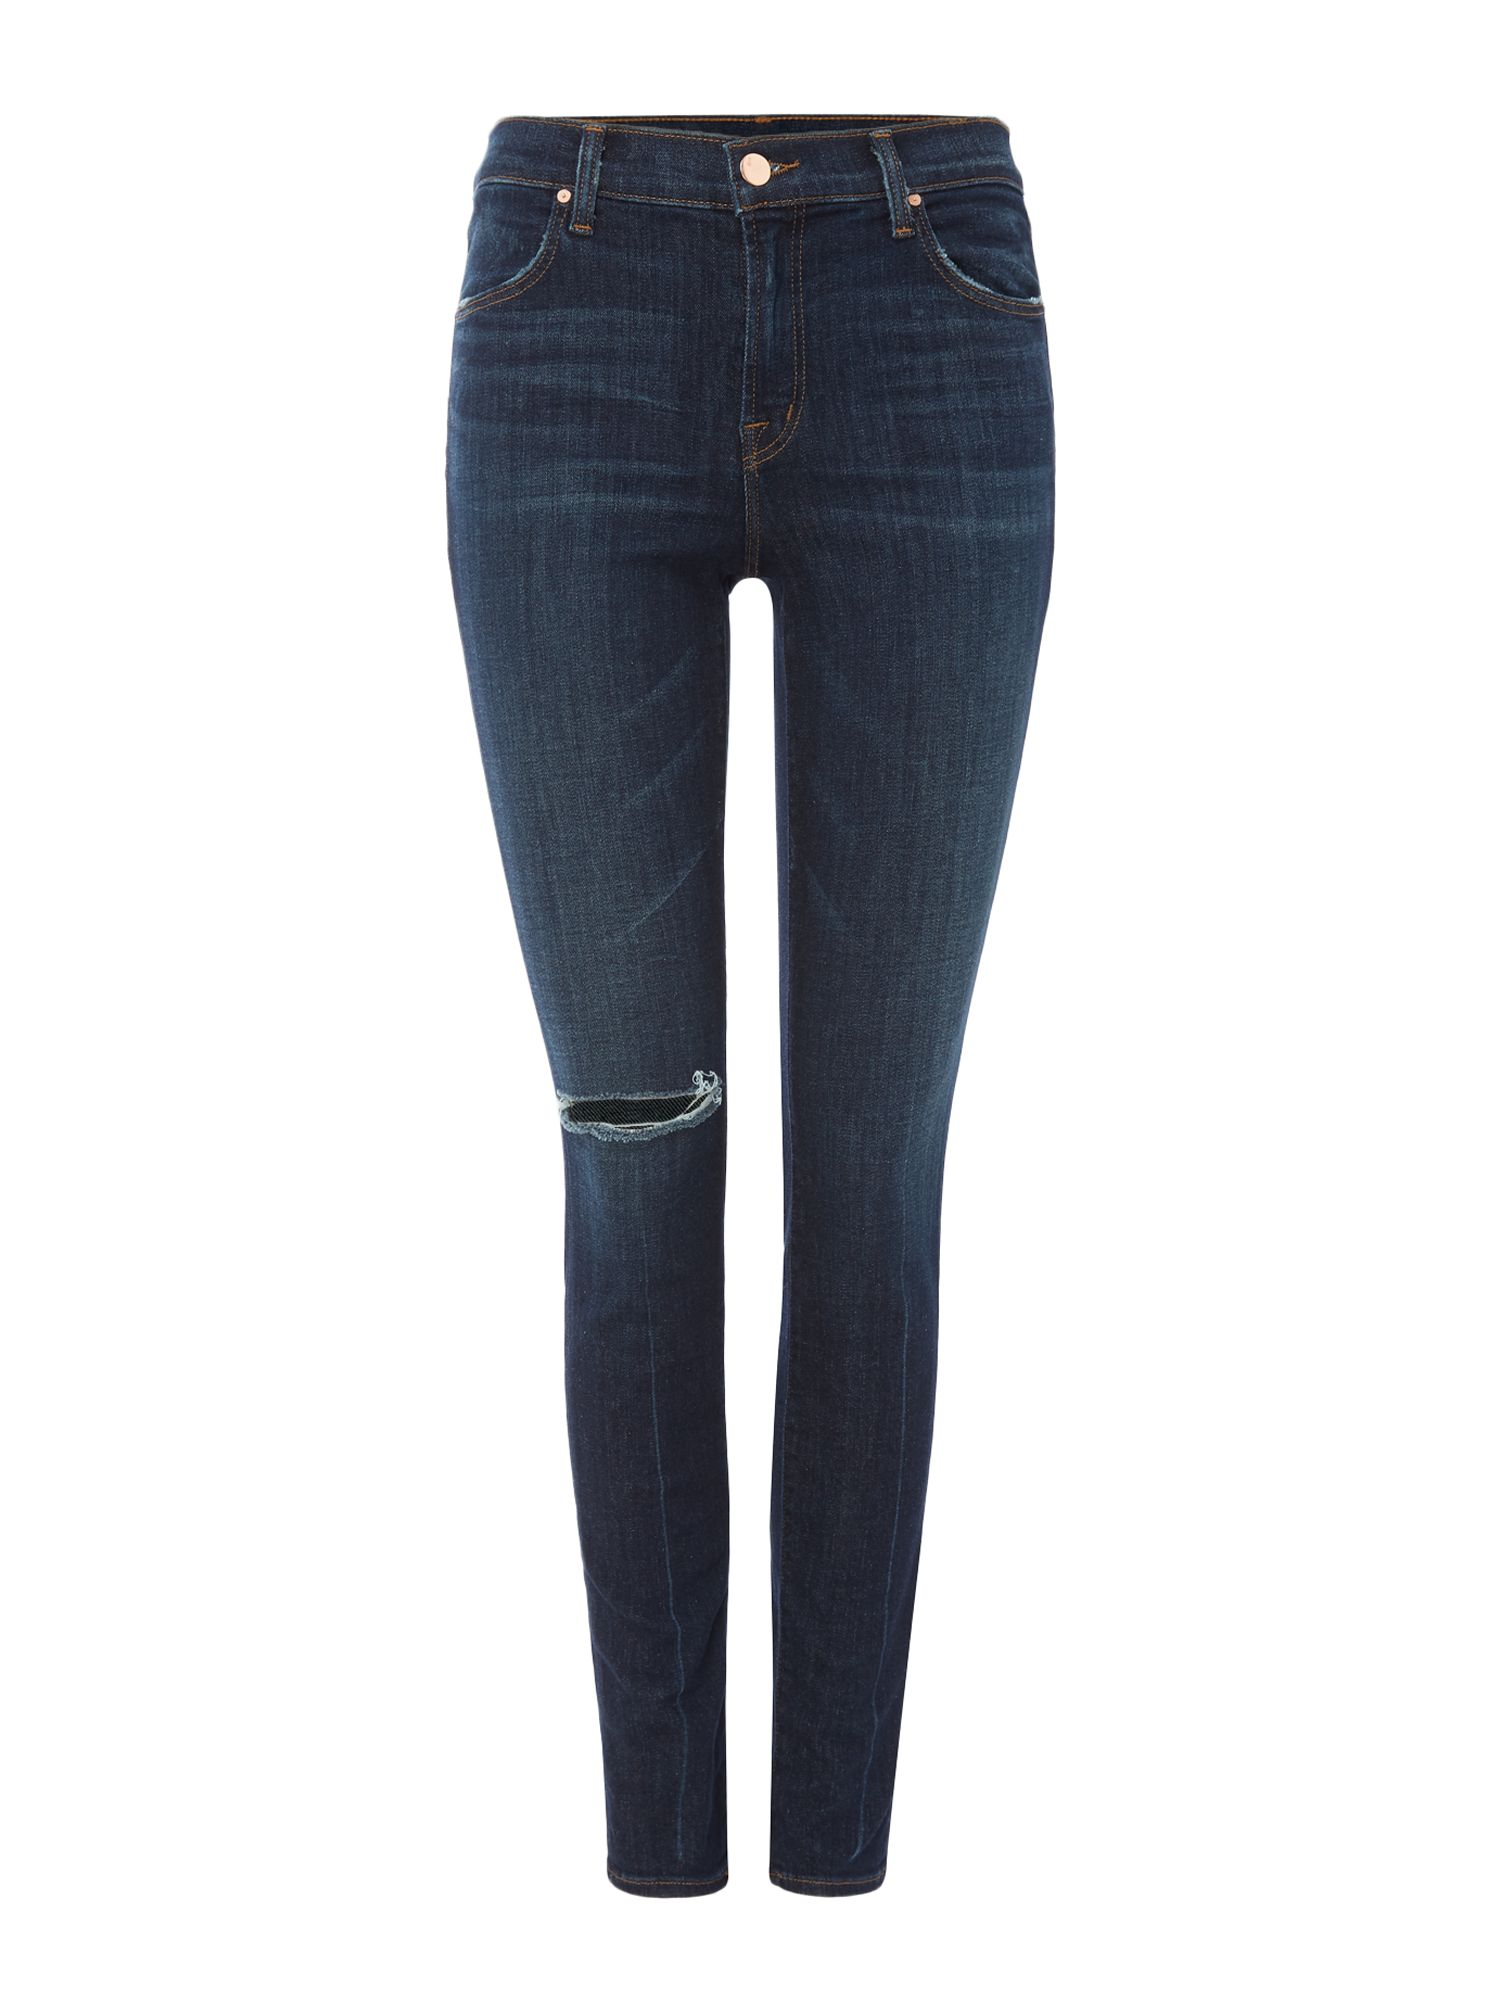 J Brand MID RISE SUPER SKINNY JEAN IN DISGUISE DESTRUCT, Denim Mid Wash